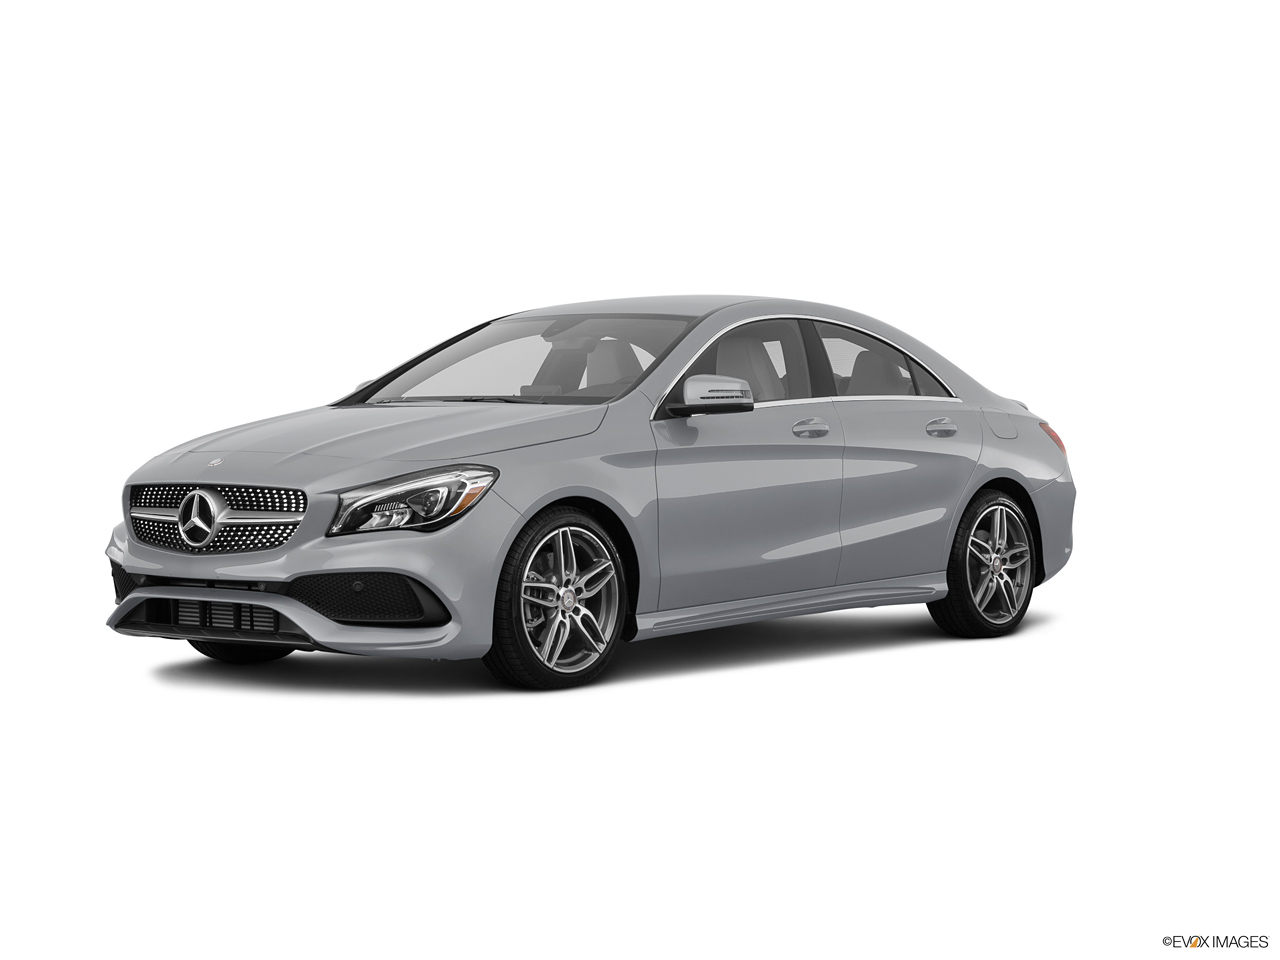 mercedes benz cla class 2017 cla 250 4matic in egypt new car prices specs reviews photos. Black Bedroom Furniture Sets. Home Design Ideas